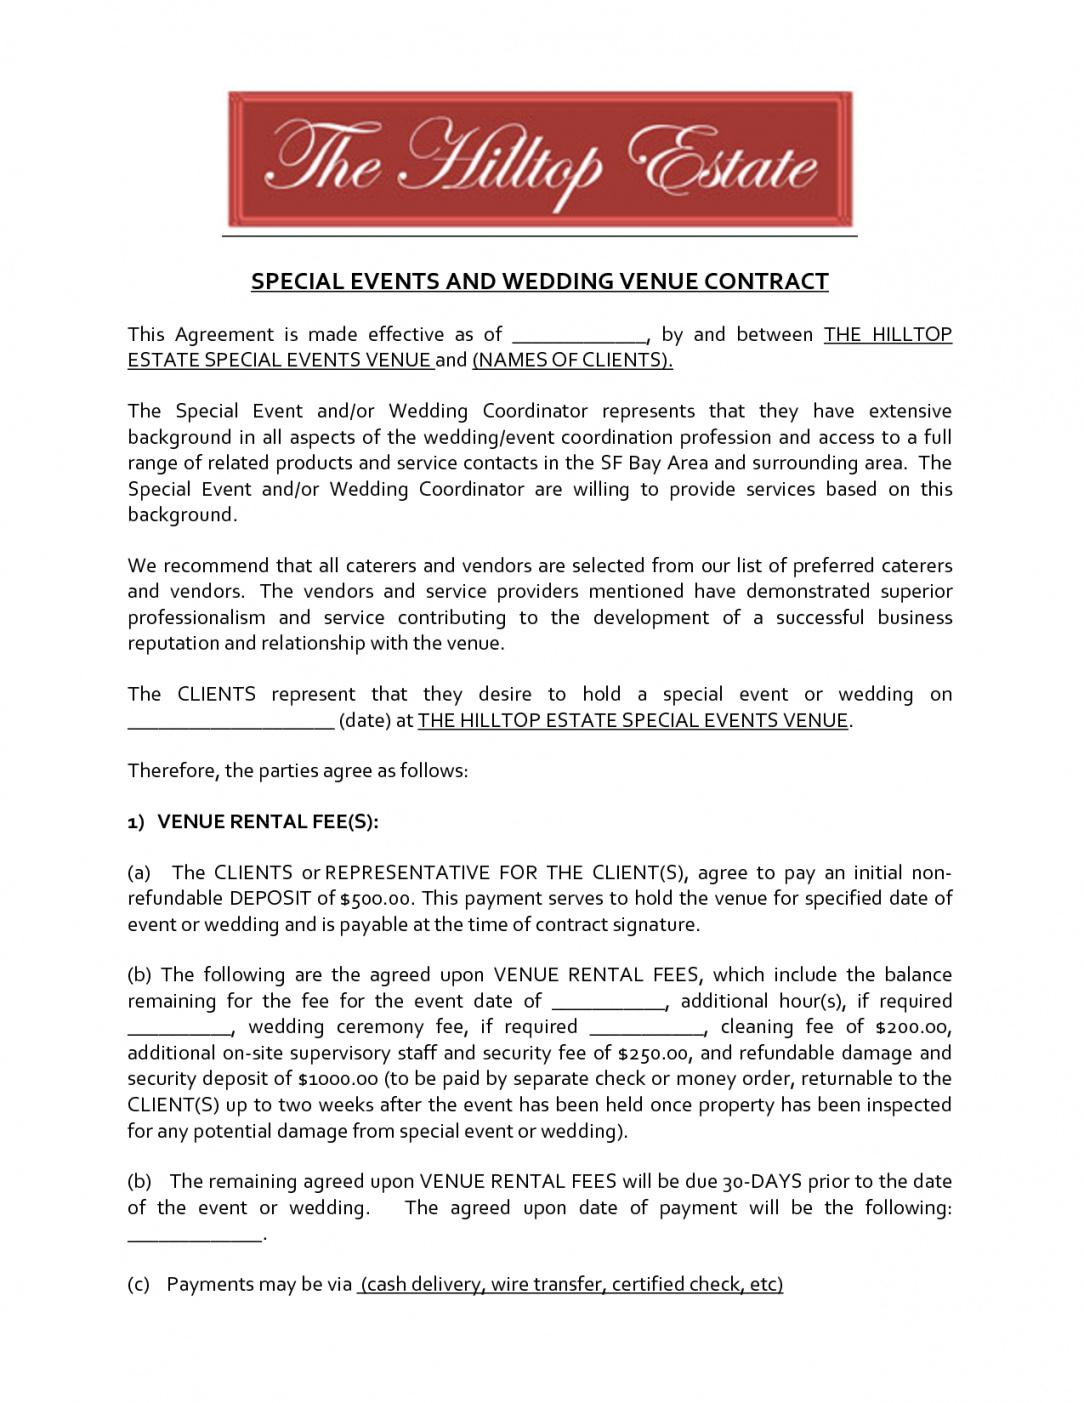 this is the wedding venue contract template  emmamcintyrephotography event venue contract sample